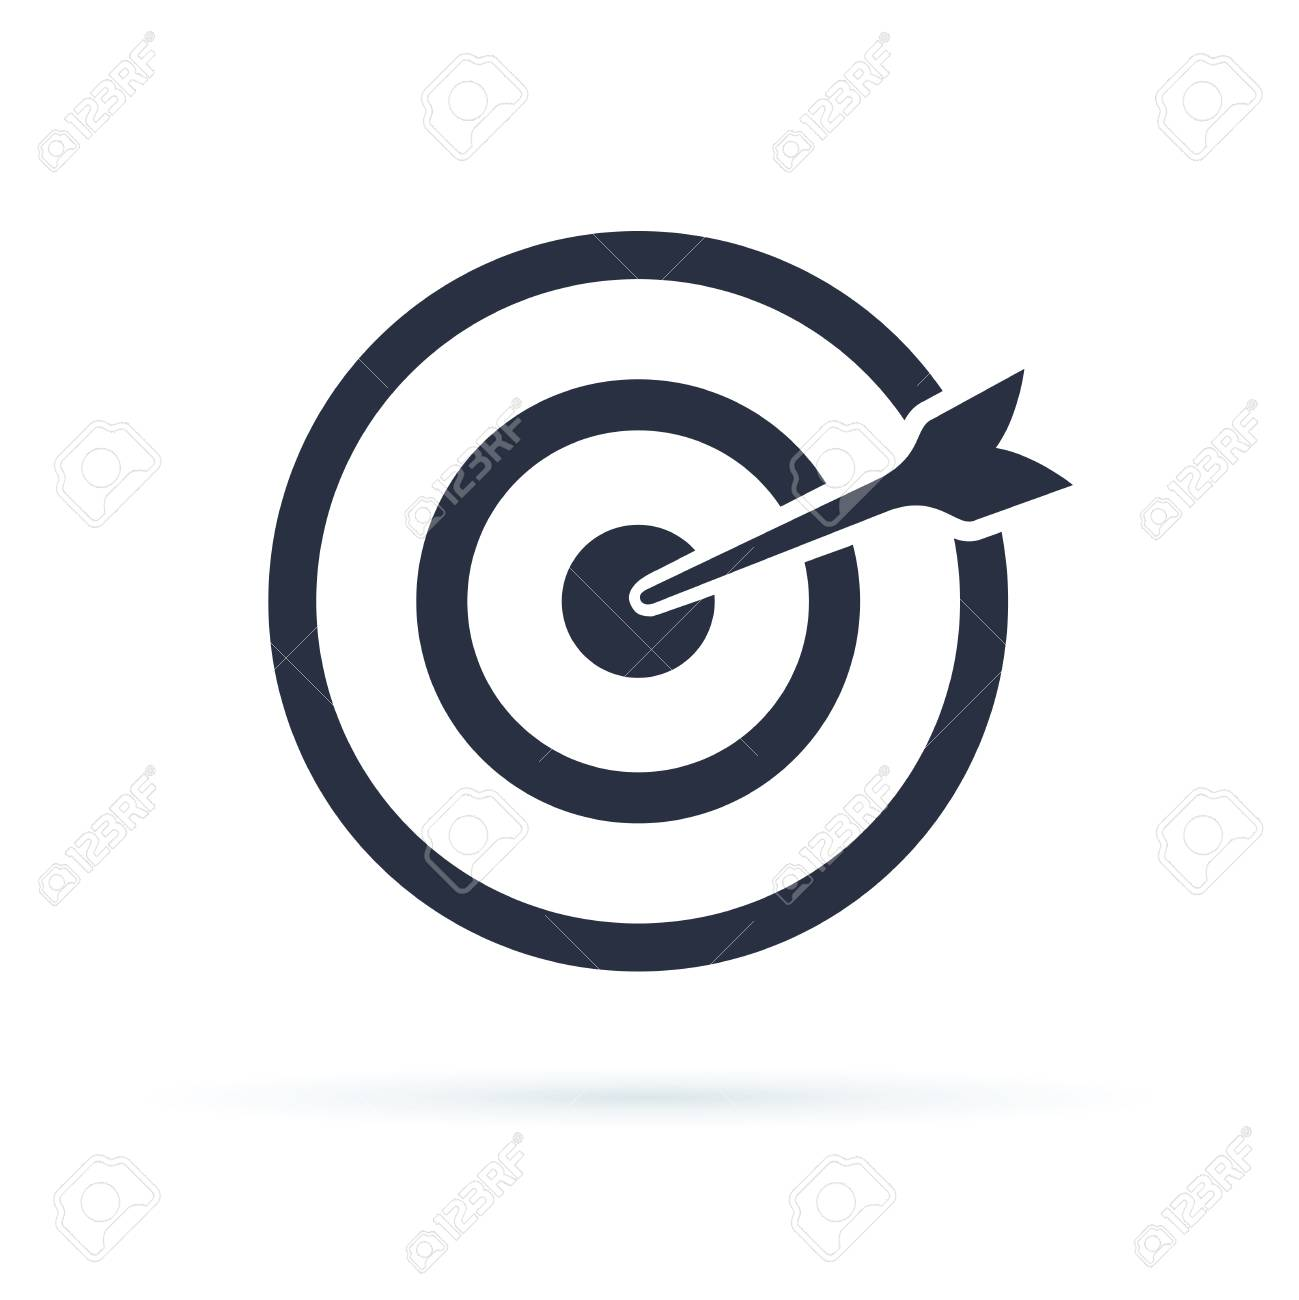 Target Icon Vector Target With An Arrow Flat Icon Concept Market Royalty Free Cliparts Vectors And Stock Illustration Image 112003697 The best selection of royalty free target icon vector art, graphics and stock illustrations. target icon vector target with an arrow flat icon concept market